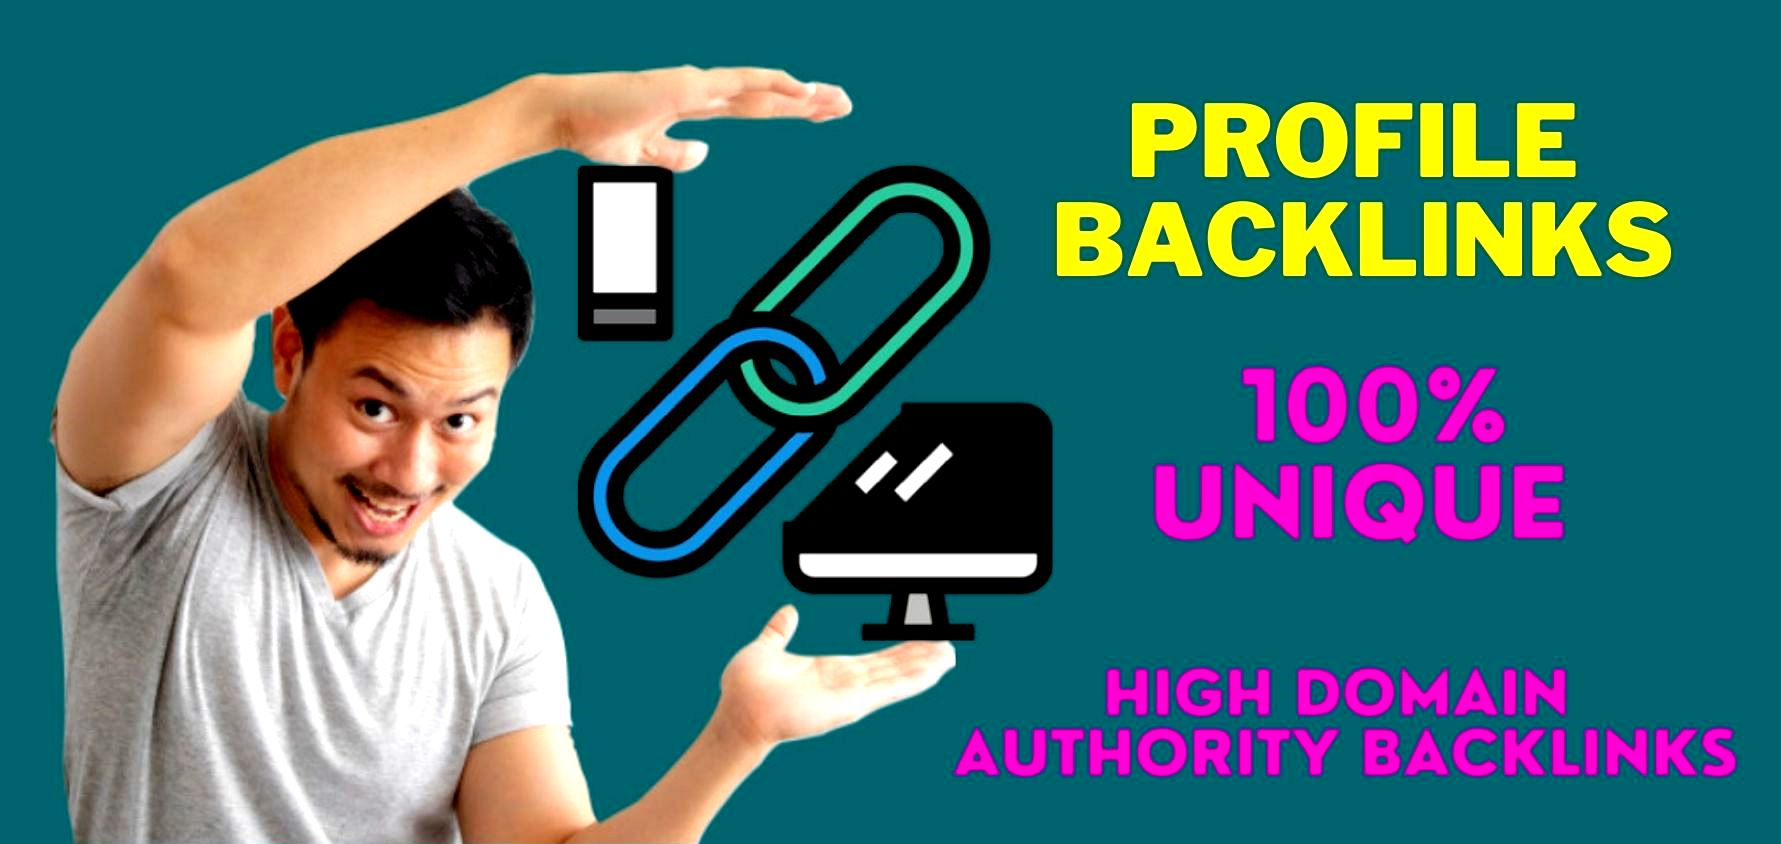 I will make 20 high quality, high Domin Authority Dofollow Backlinks for off page SEO services